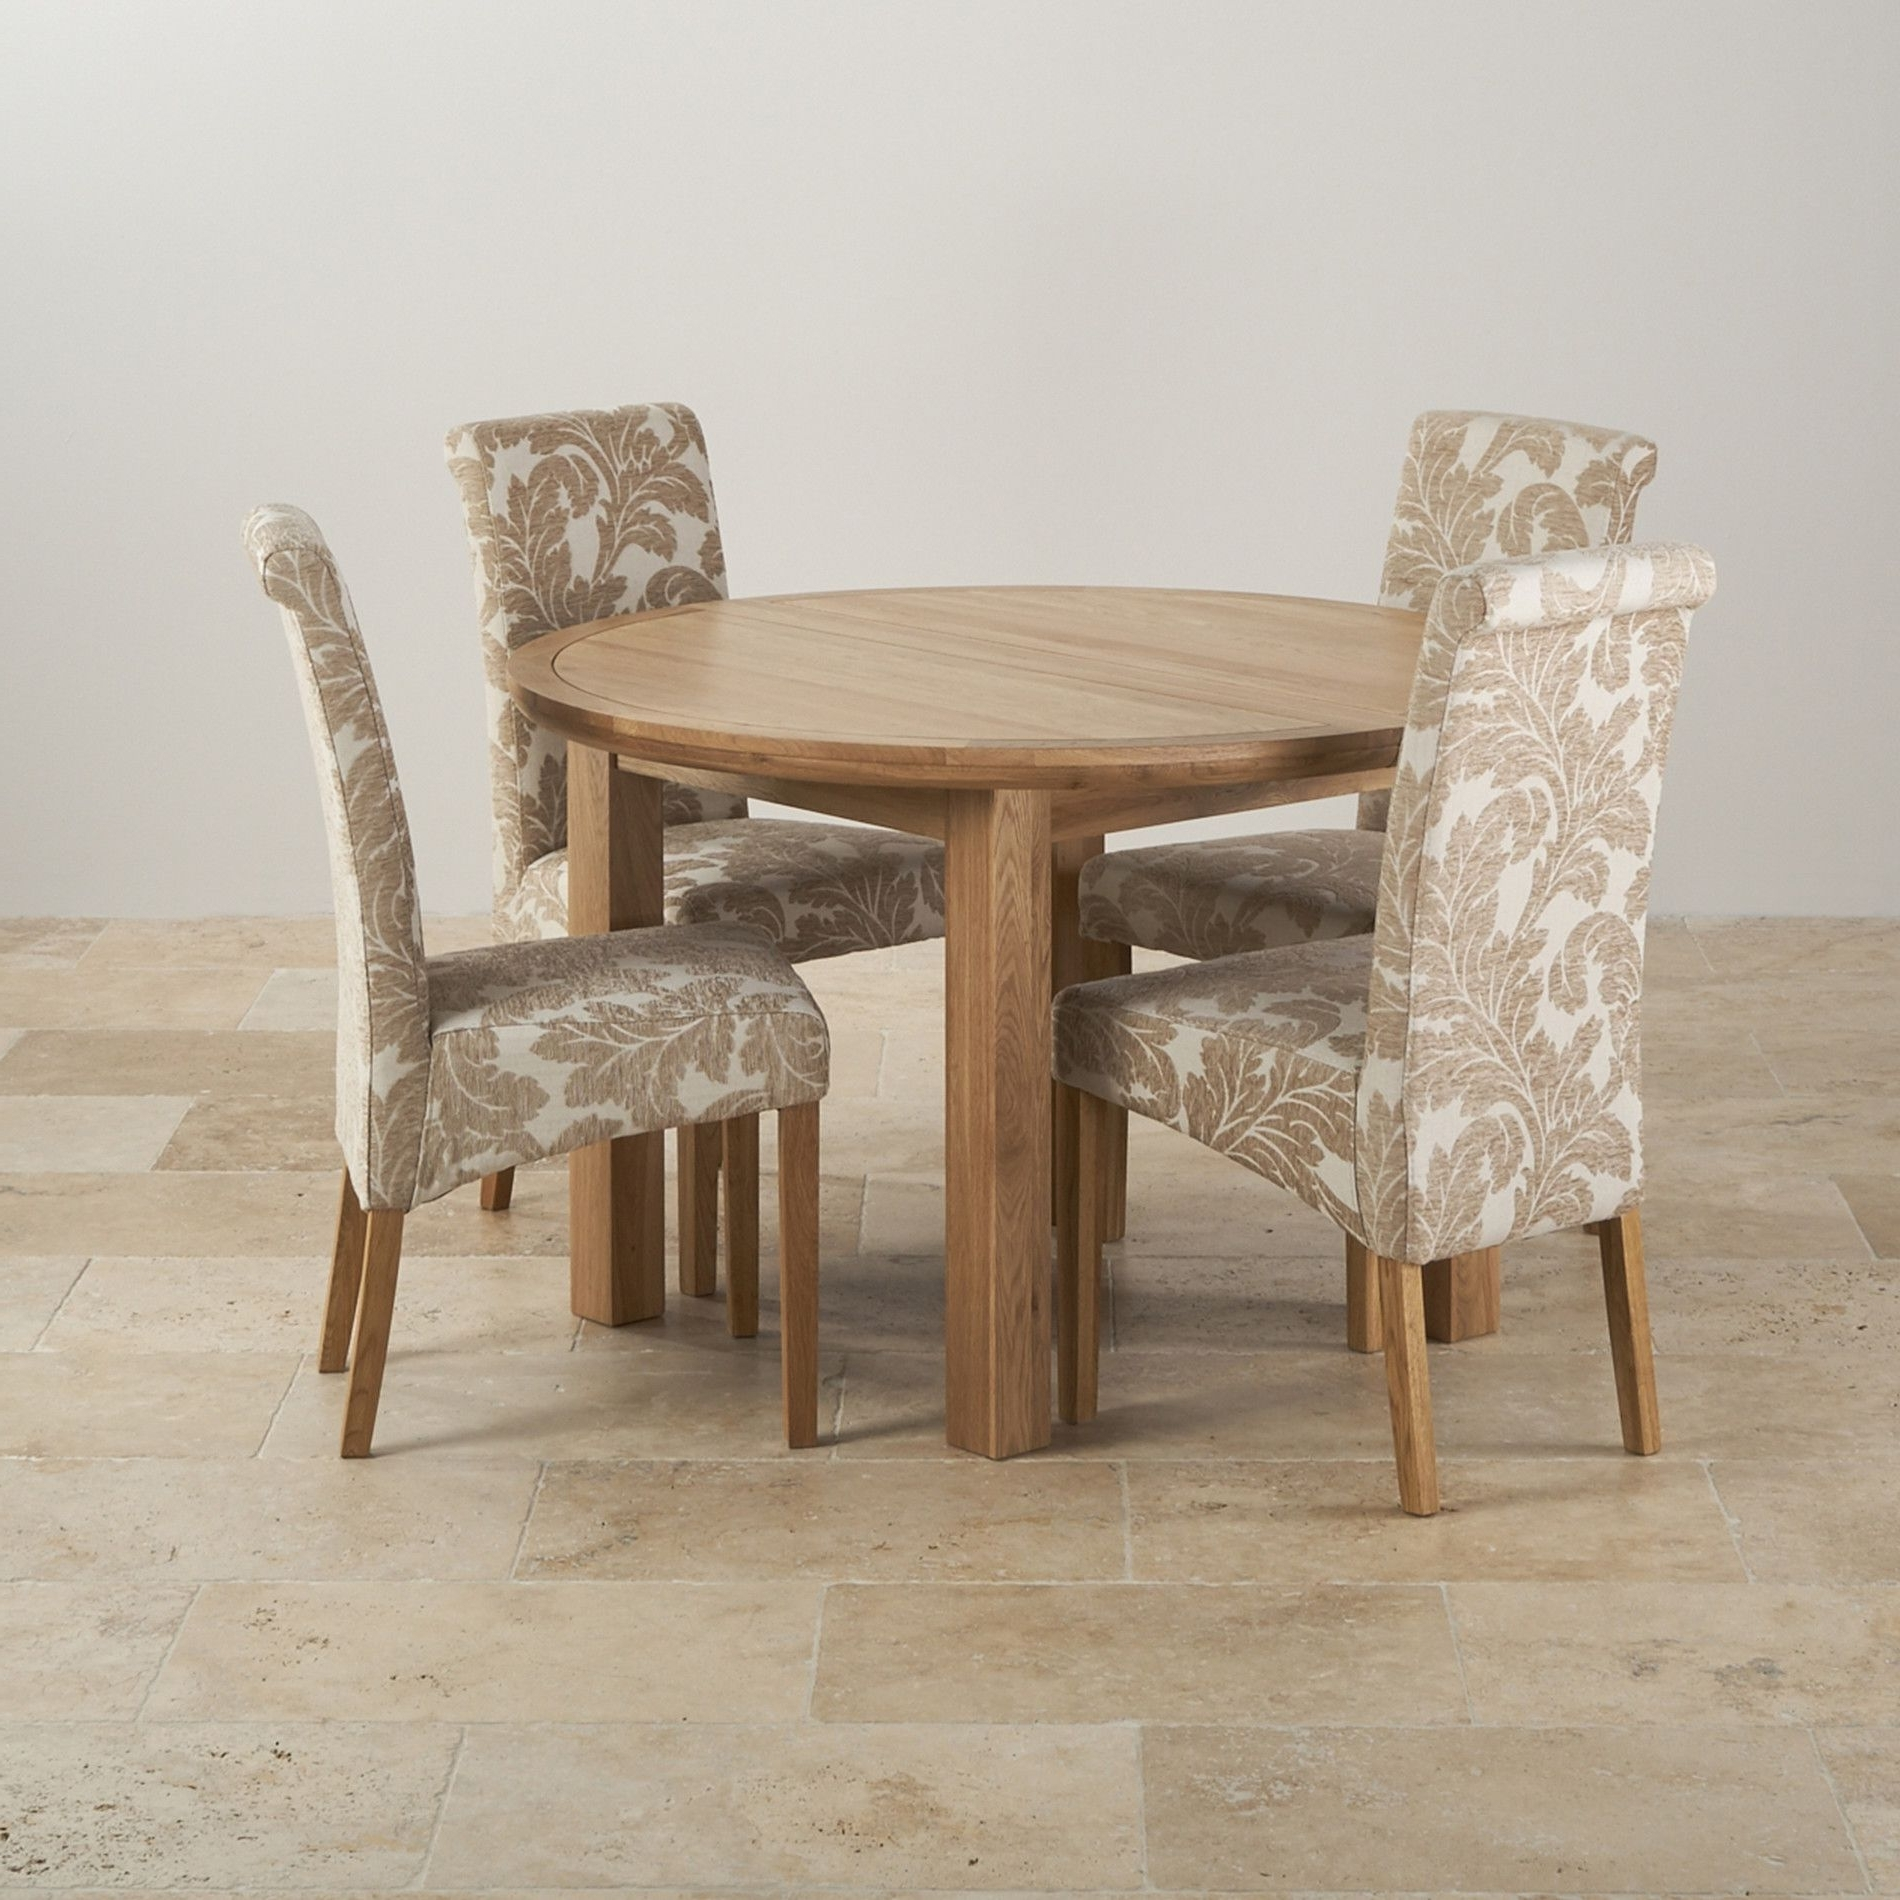 Extending Oak Dining Tables And Chairs Within Most Recently Released Knightsbridge Natural Oak Dining Set – 4Ft Round Extending Table & 4 (Gallery 12 of 25)